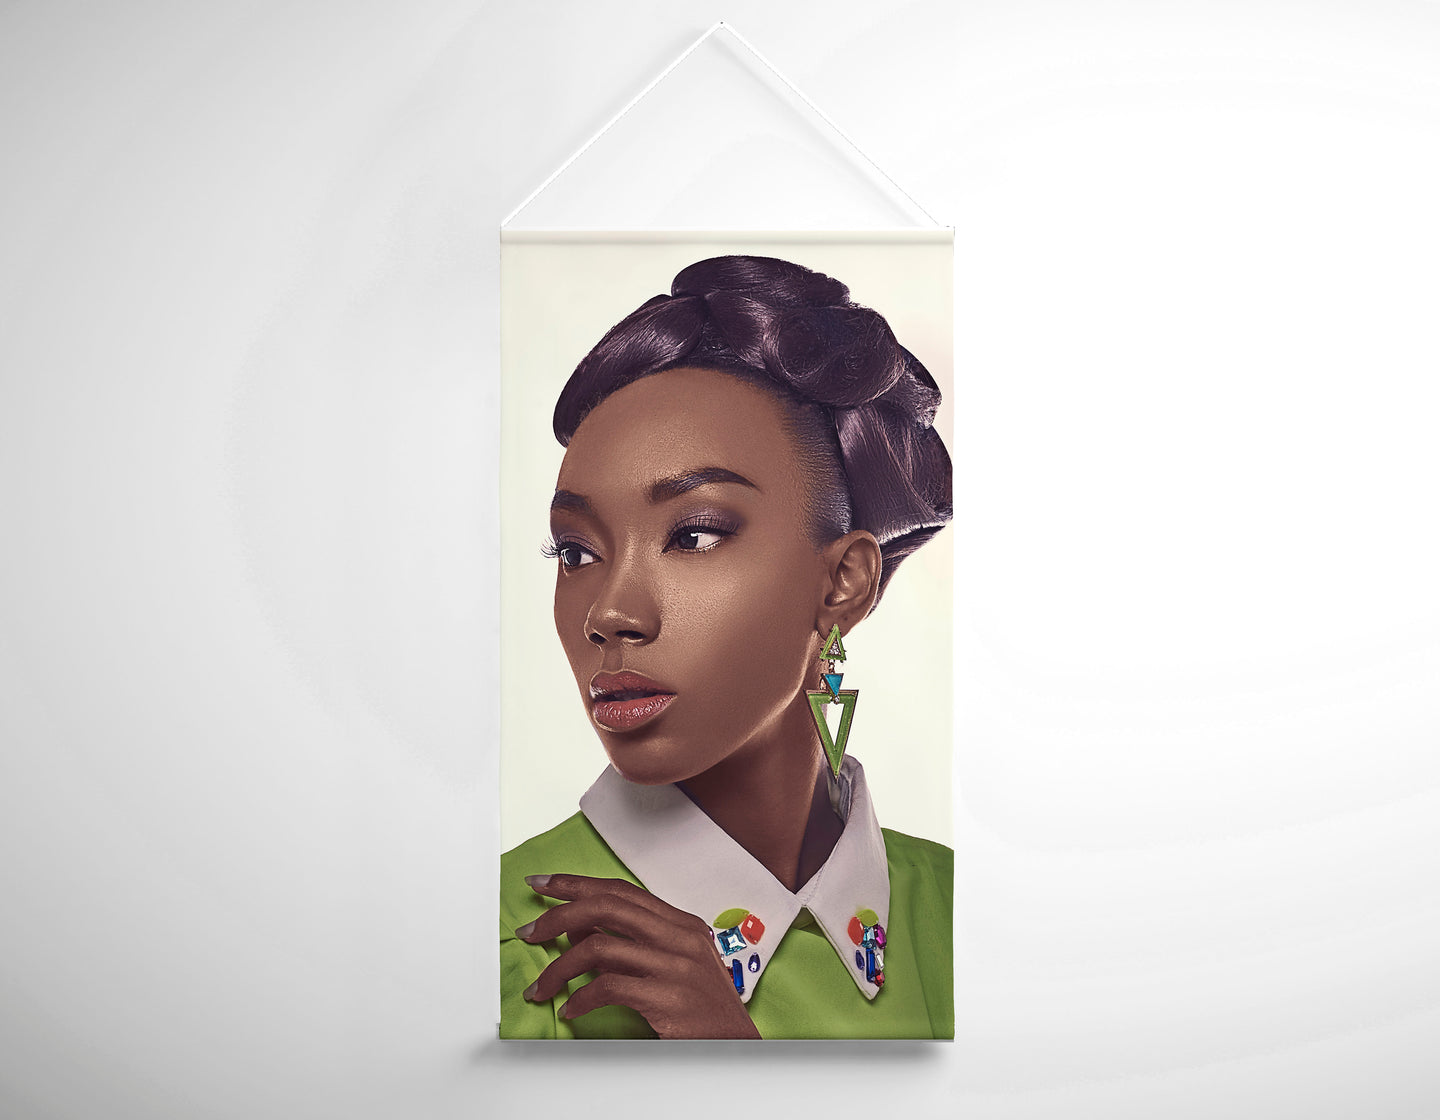 Salon Banner - Black Woman in Updo with Big Curls